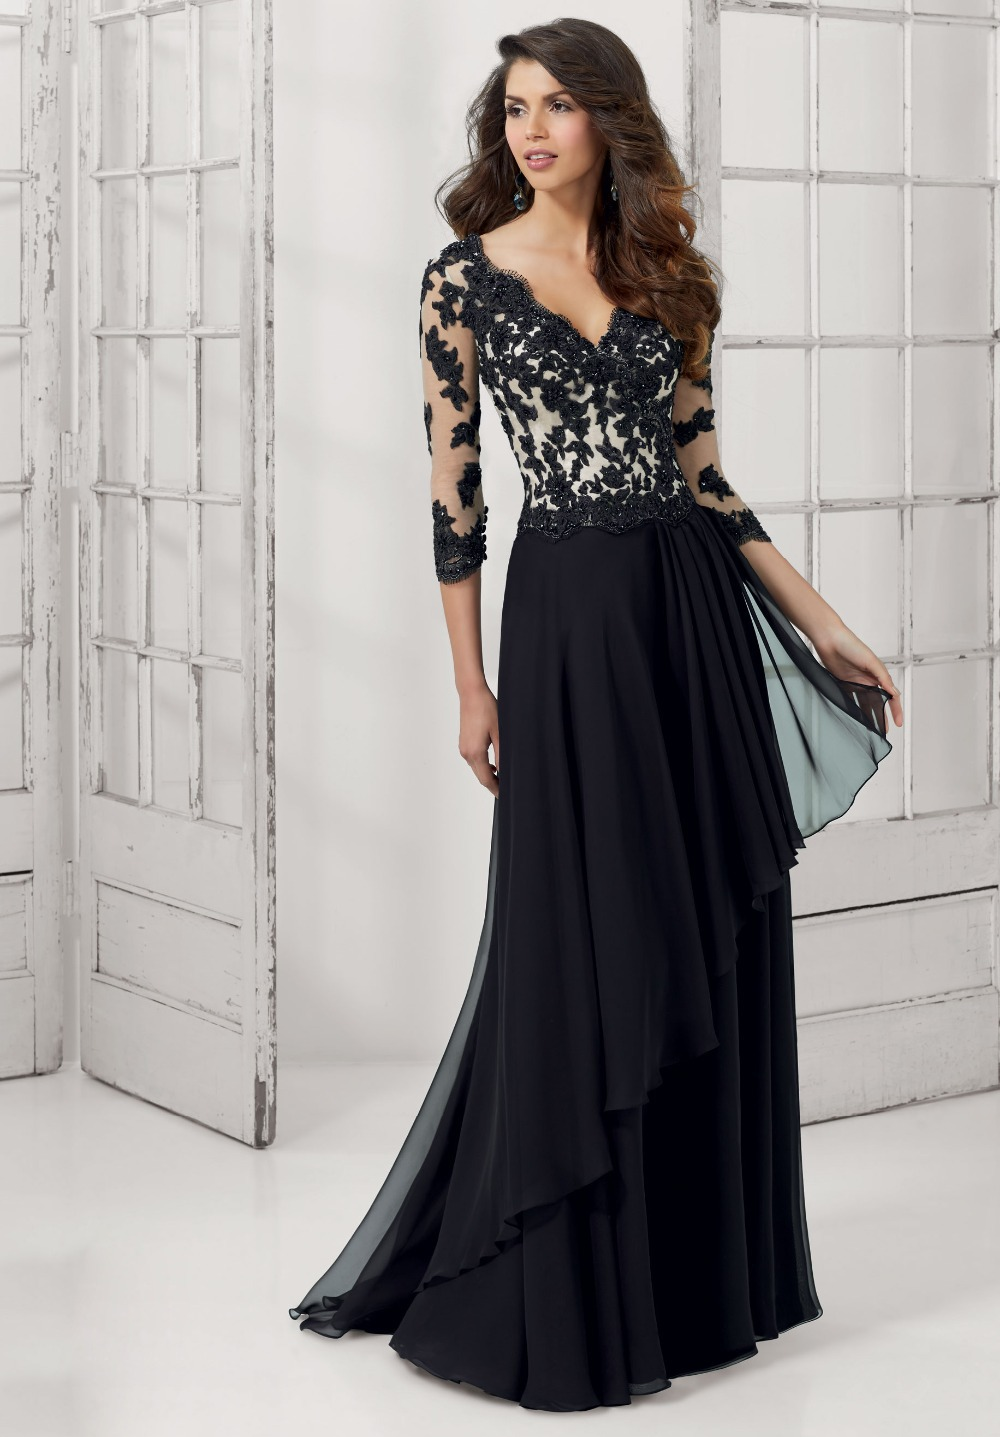 Long prom dresses evening dresses 2015 new arrival formal for Formal long dresses for weddings